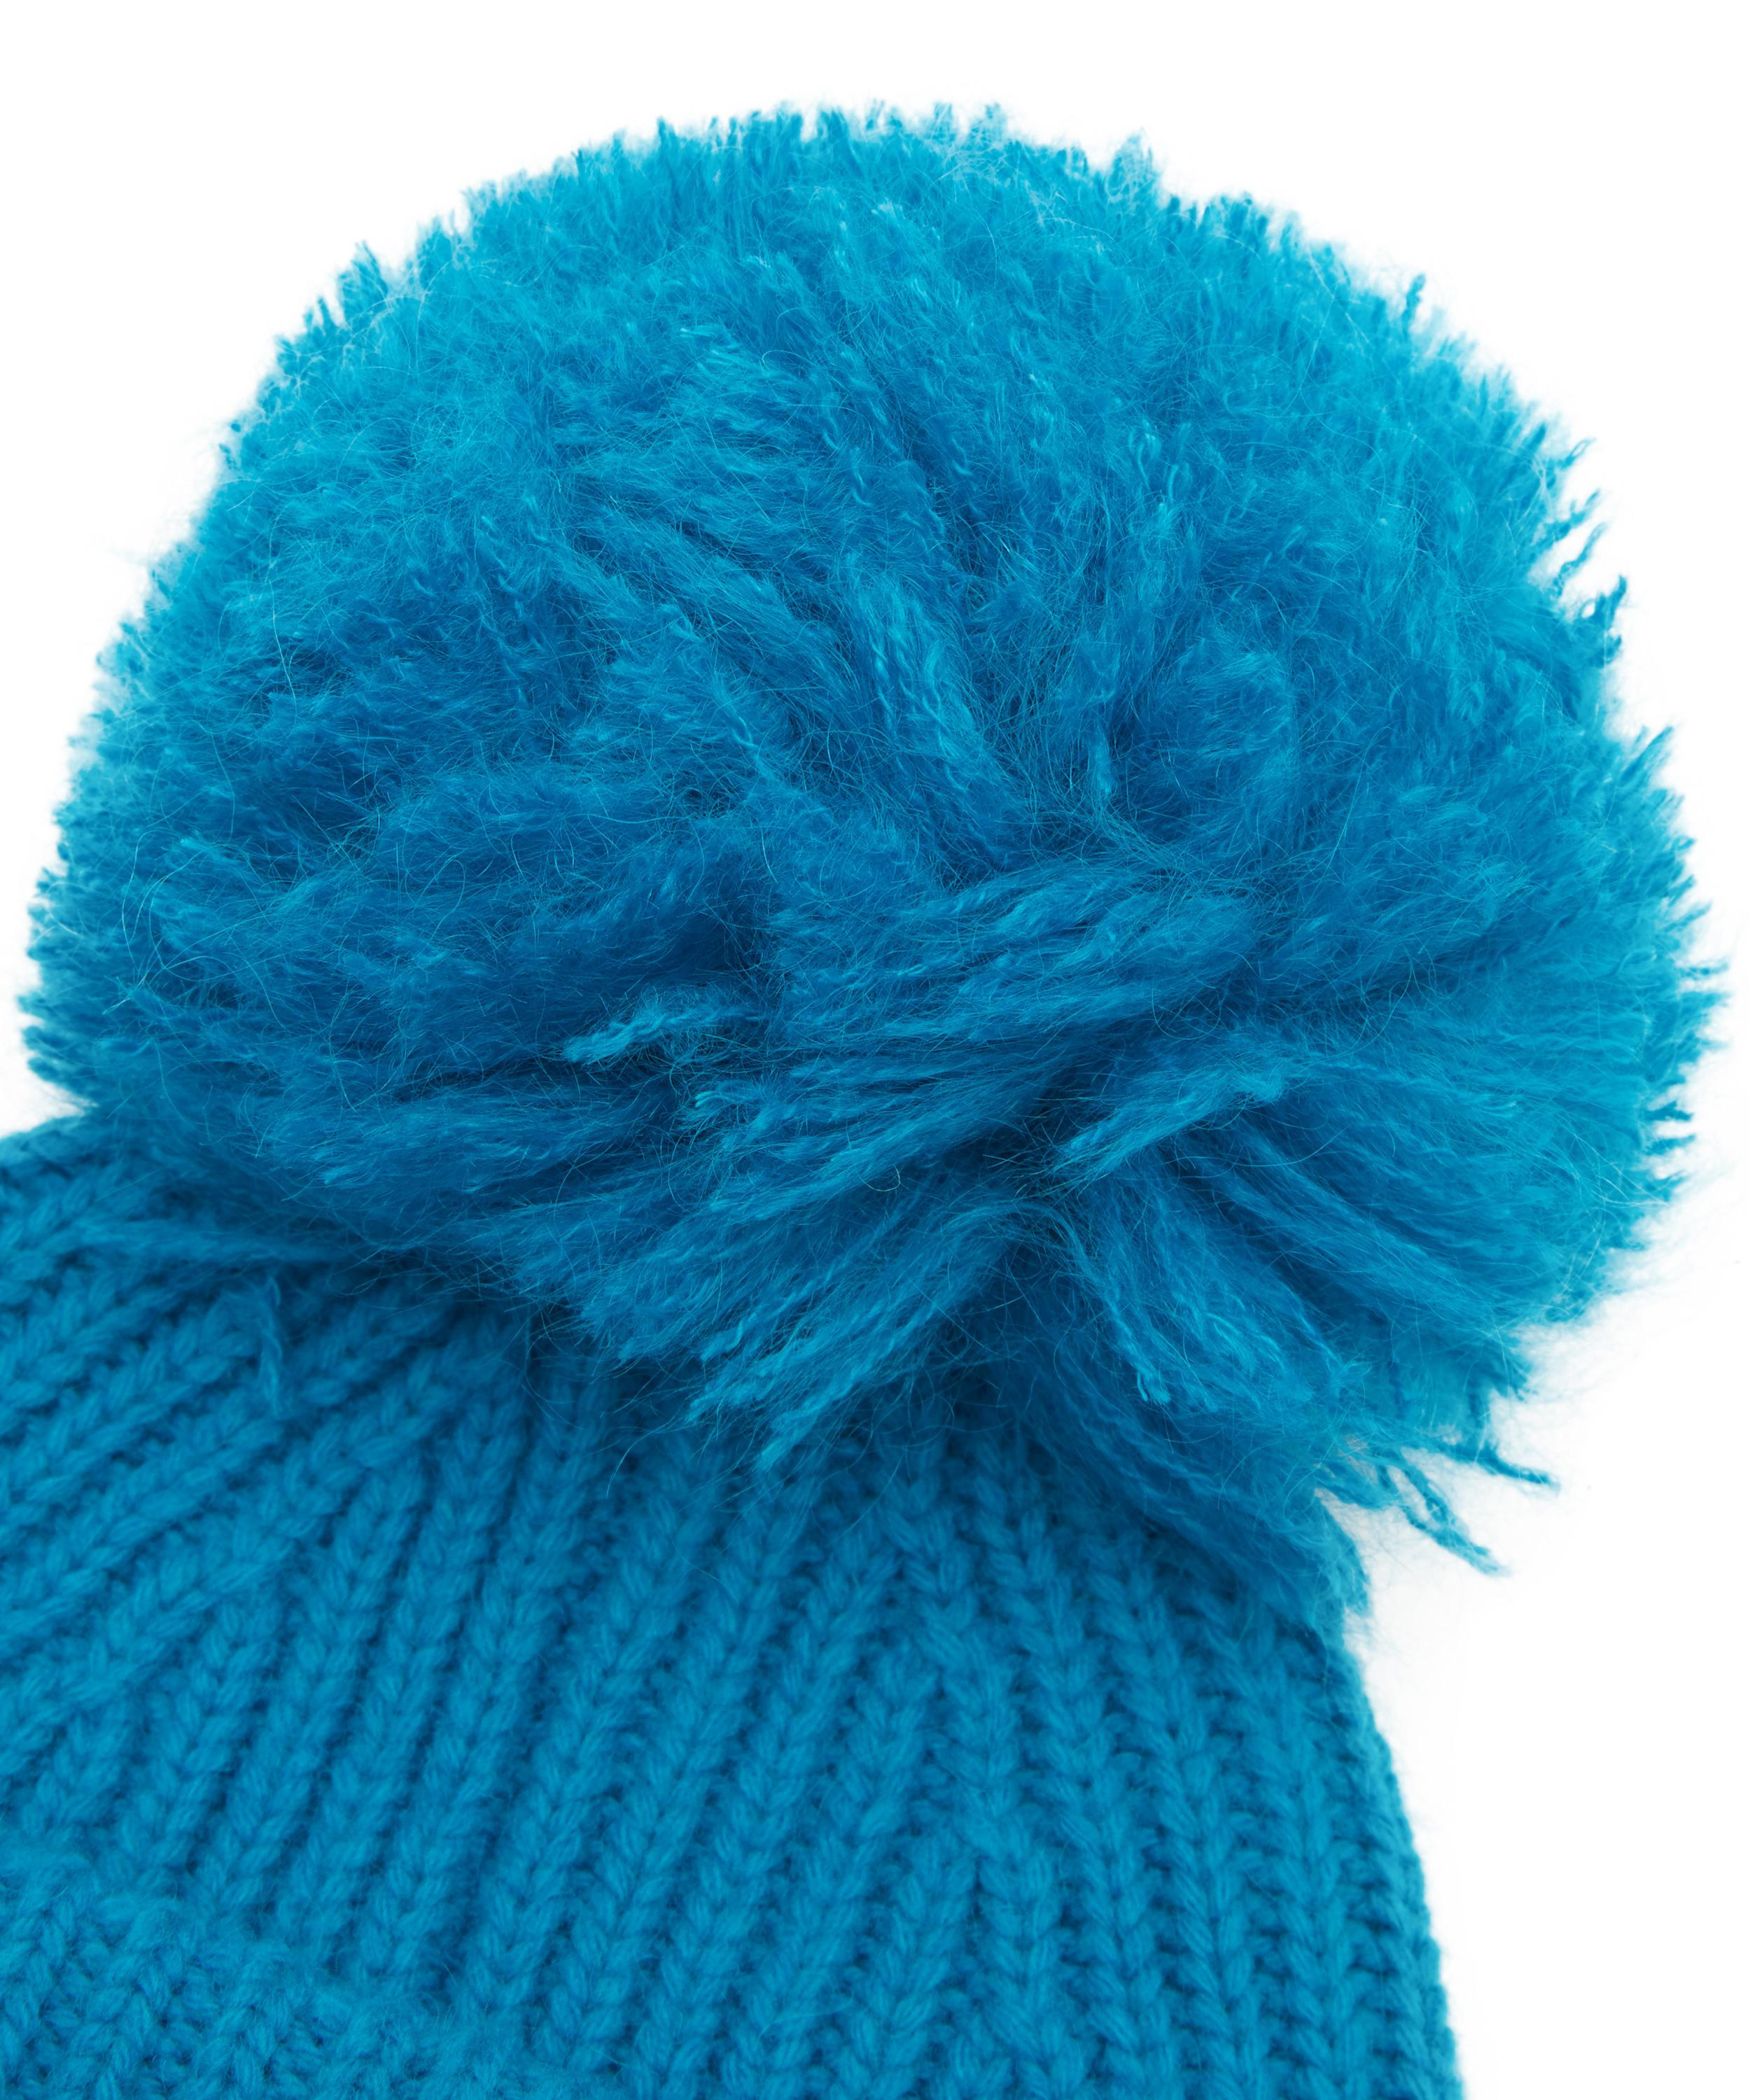 Lyst - Acne Studios Solia Knitted Pom Pom Hat in Blue bcf1d57b5814